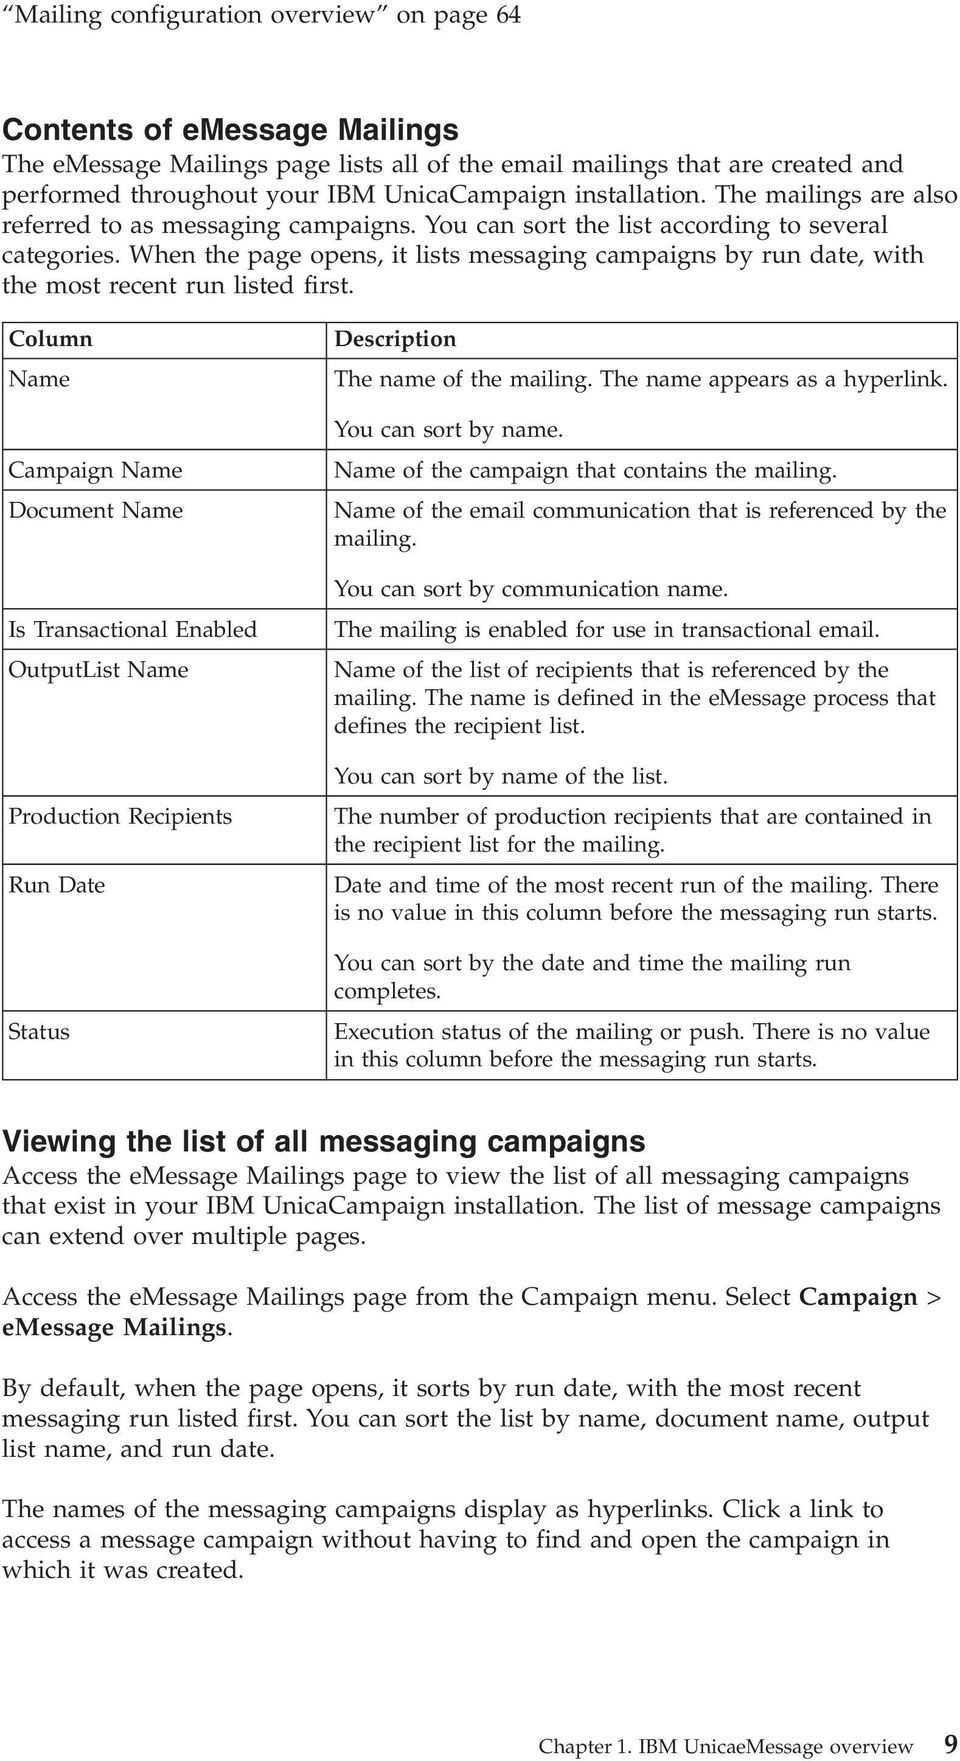 When the page opens, it lists messaging campaigns by run date, with the most recent run listed first.